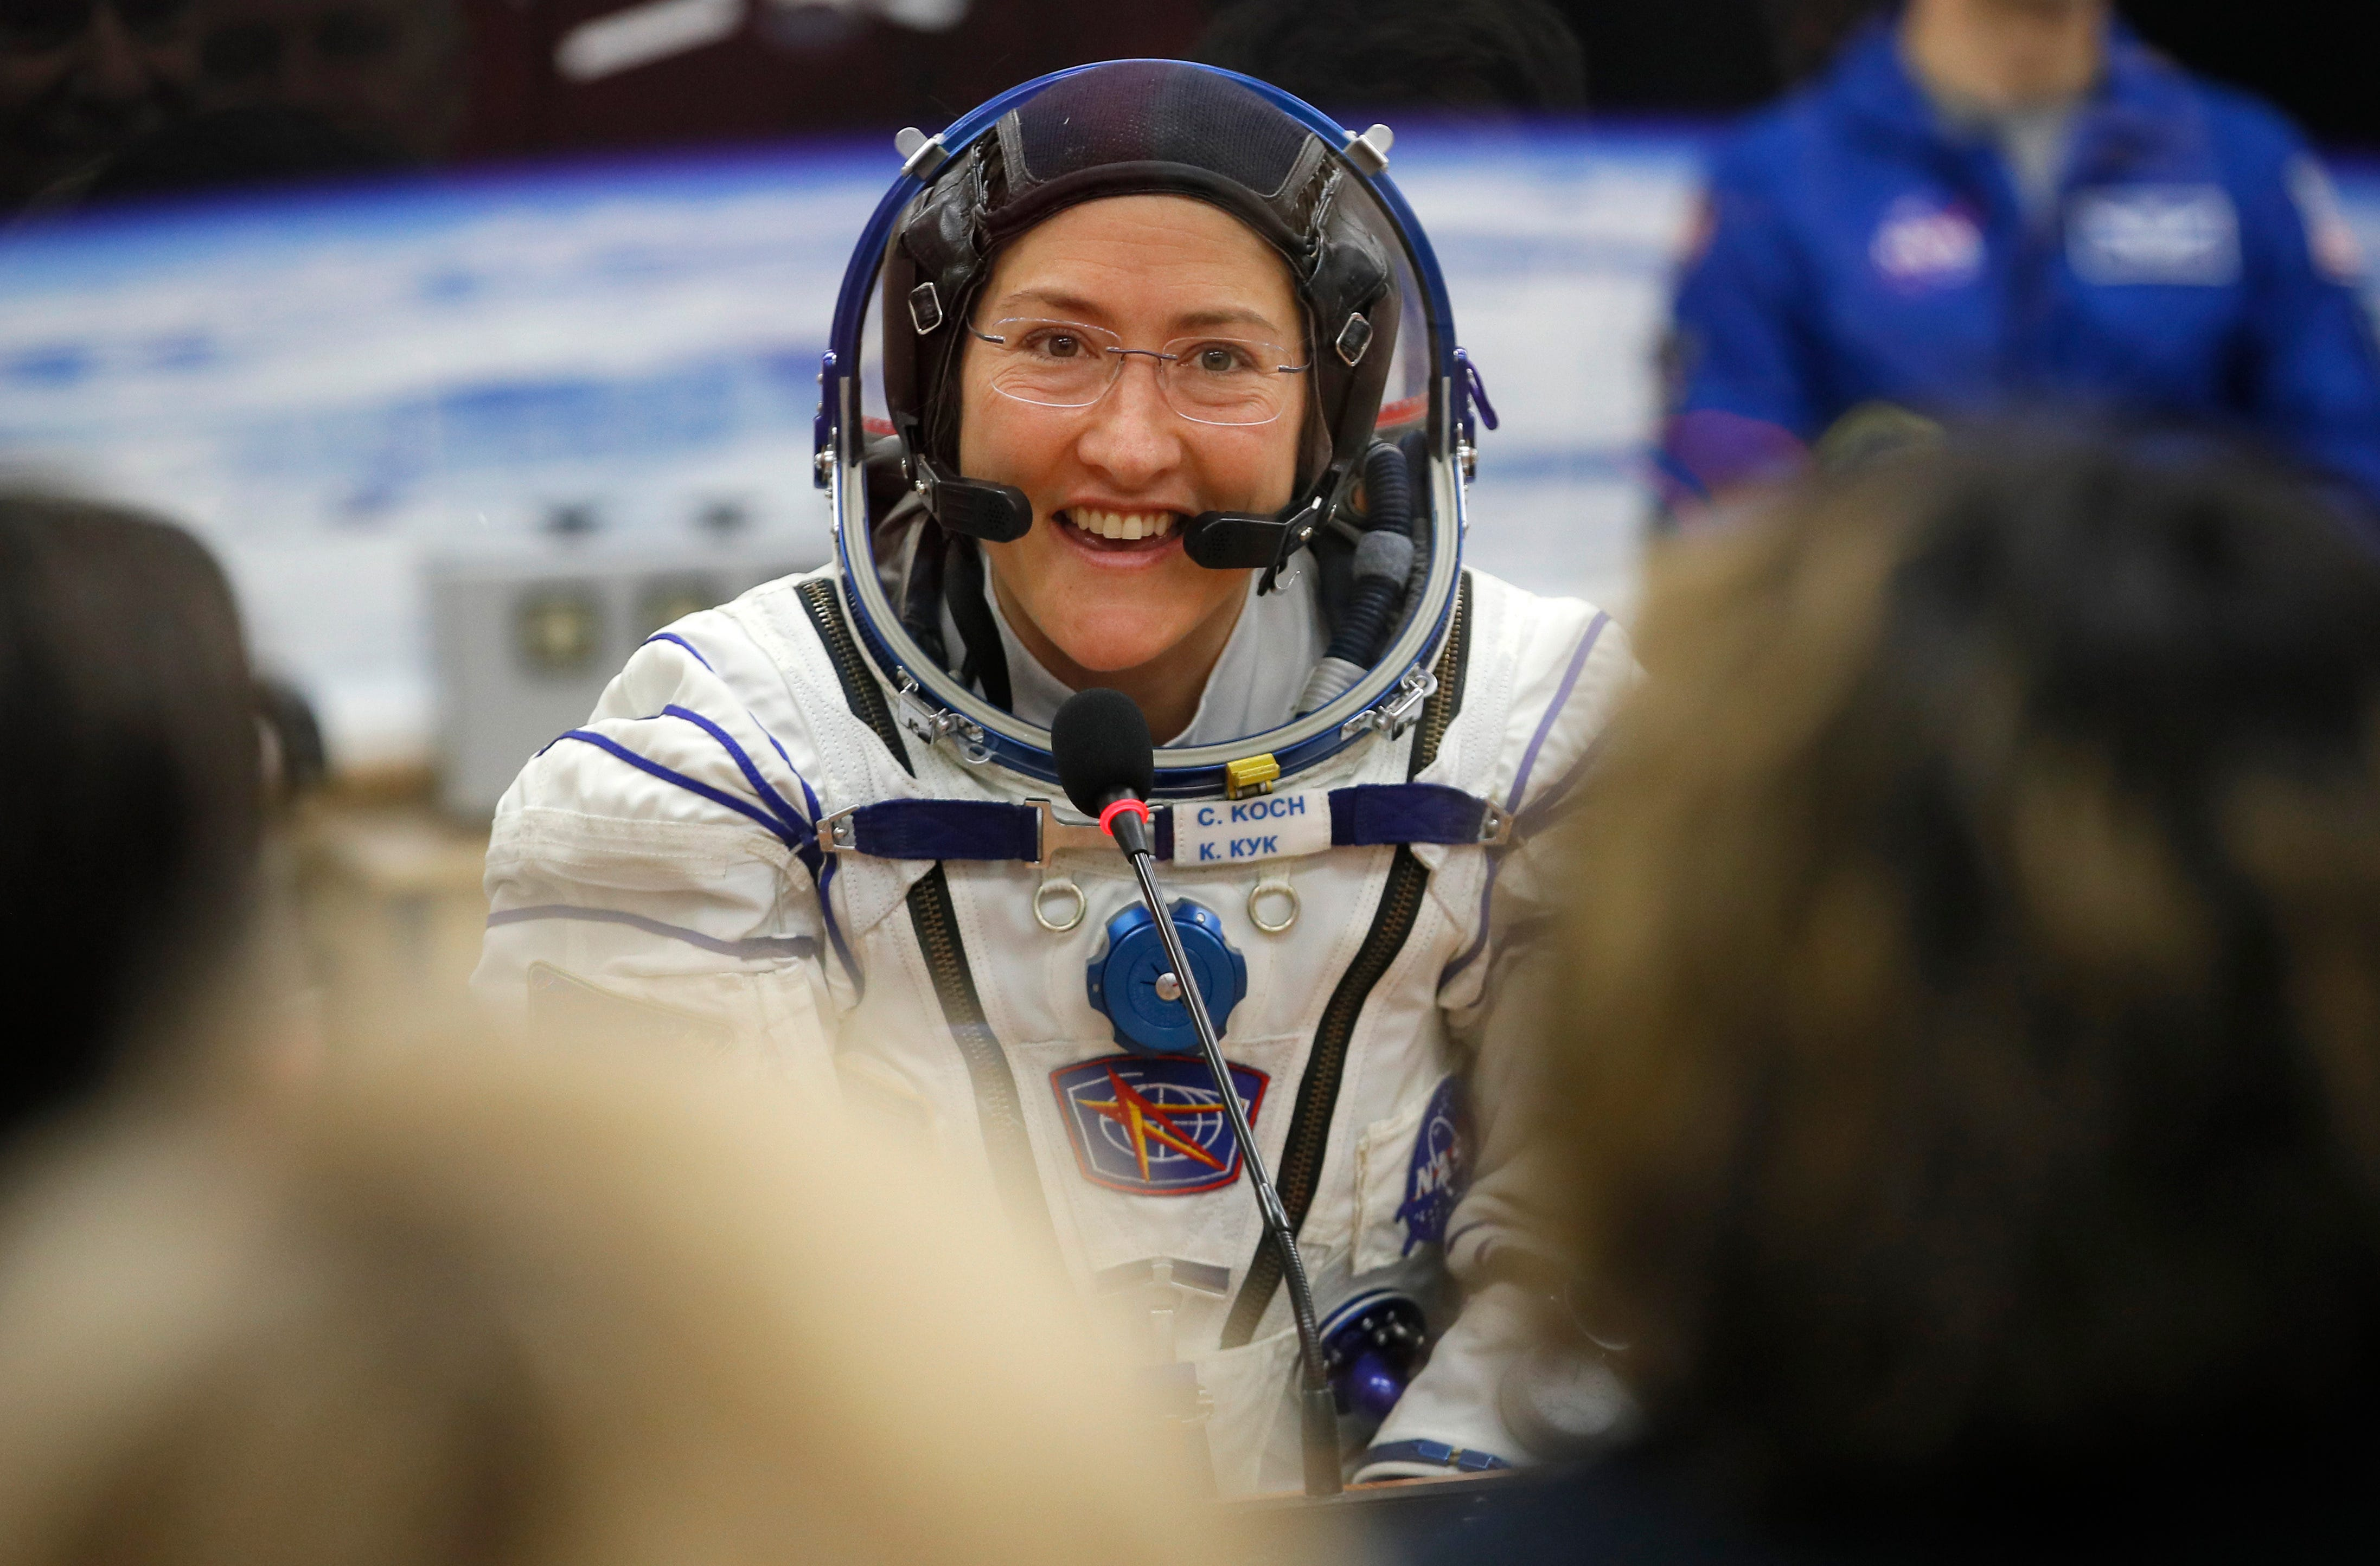 Breaking news: First female spacewalk is set, again. NASA says it sent the correct size spacesuit this time